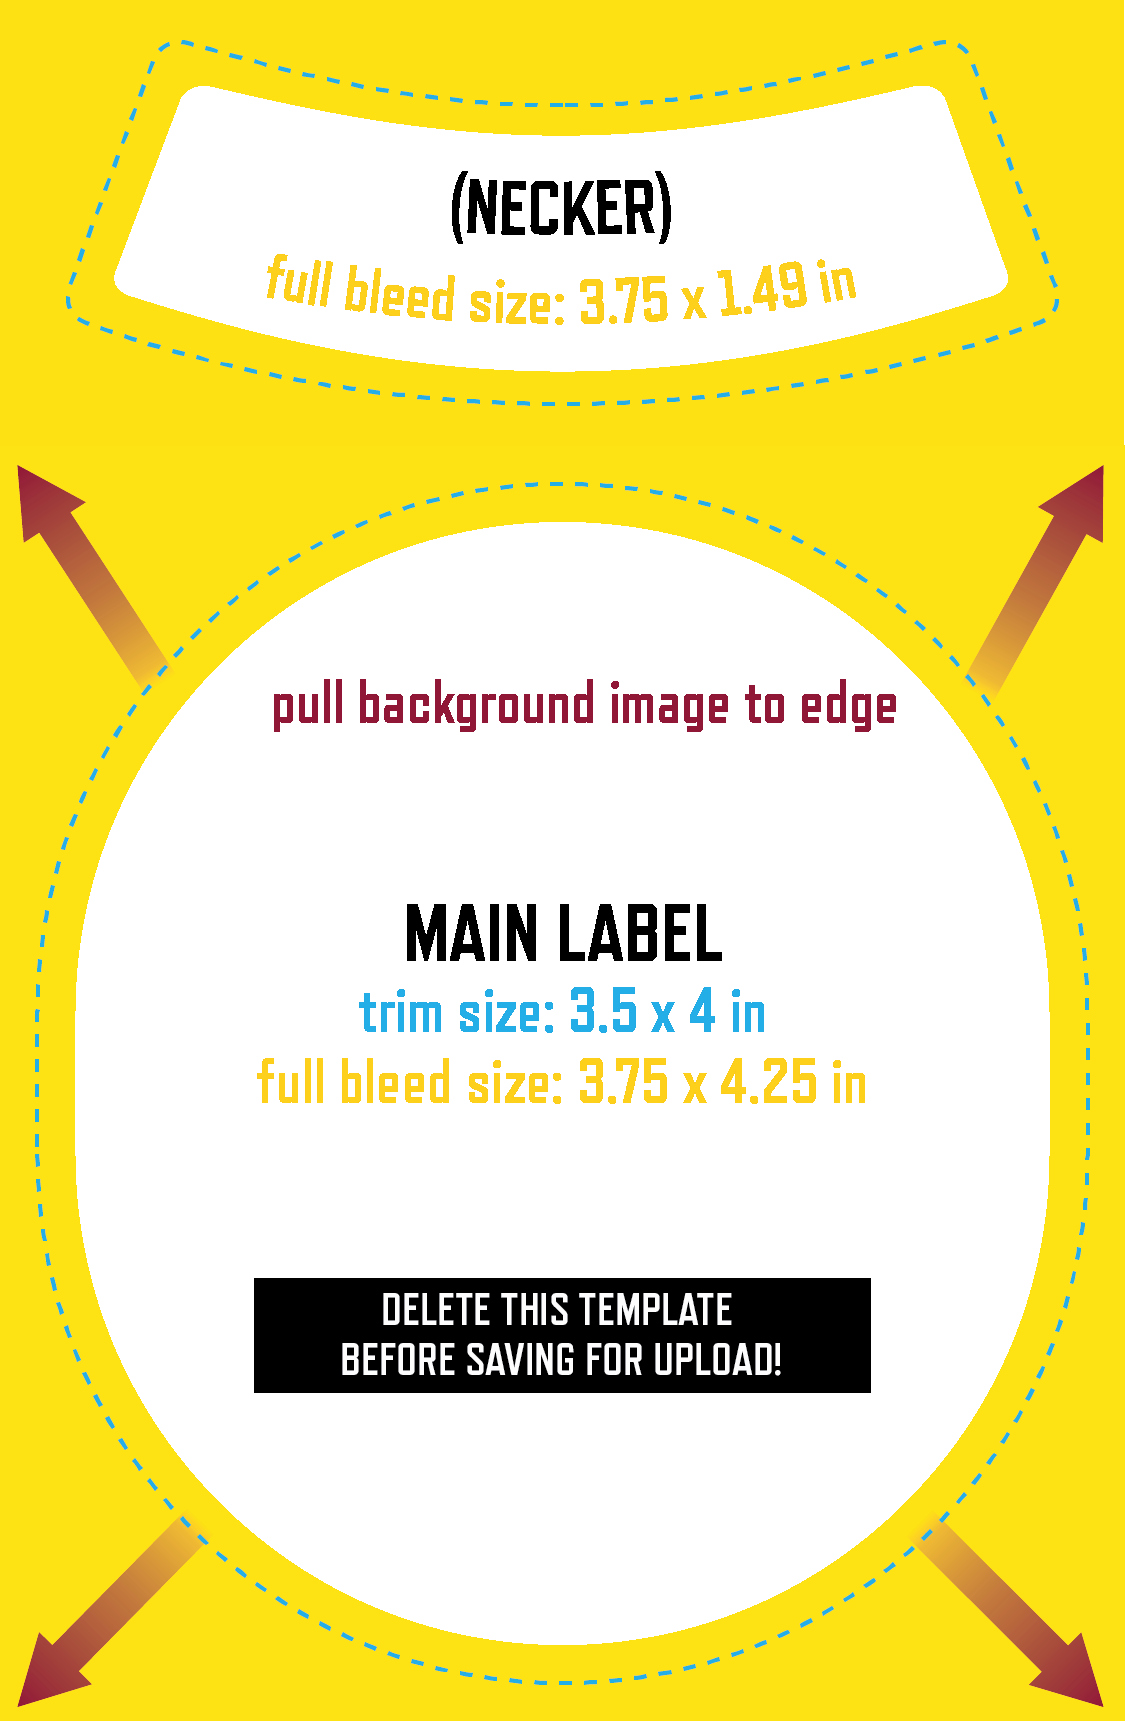 Bottle Label Template Free New Uploading Your Own Design Grogtag